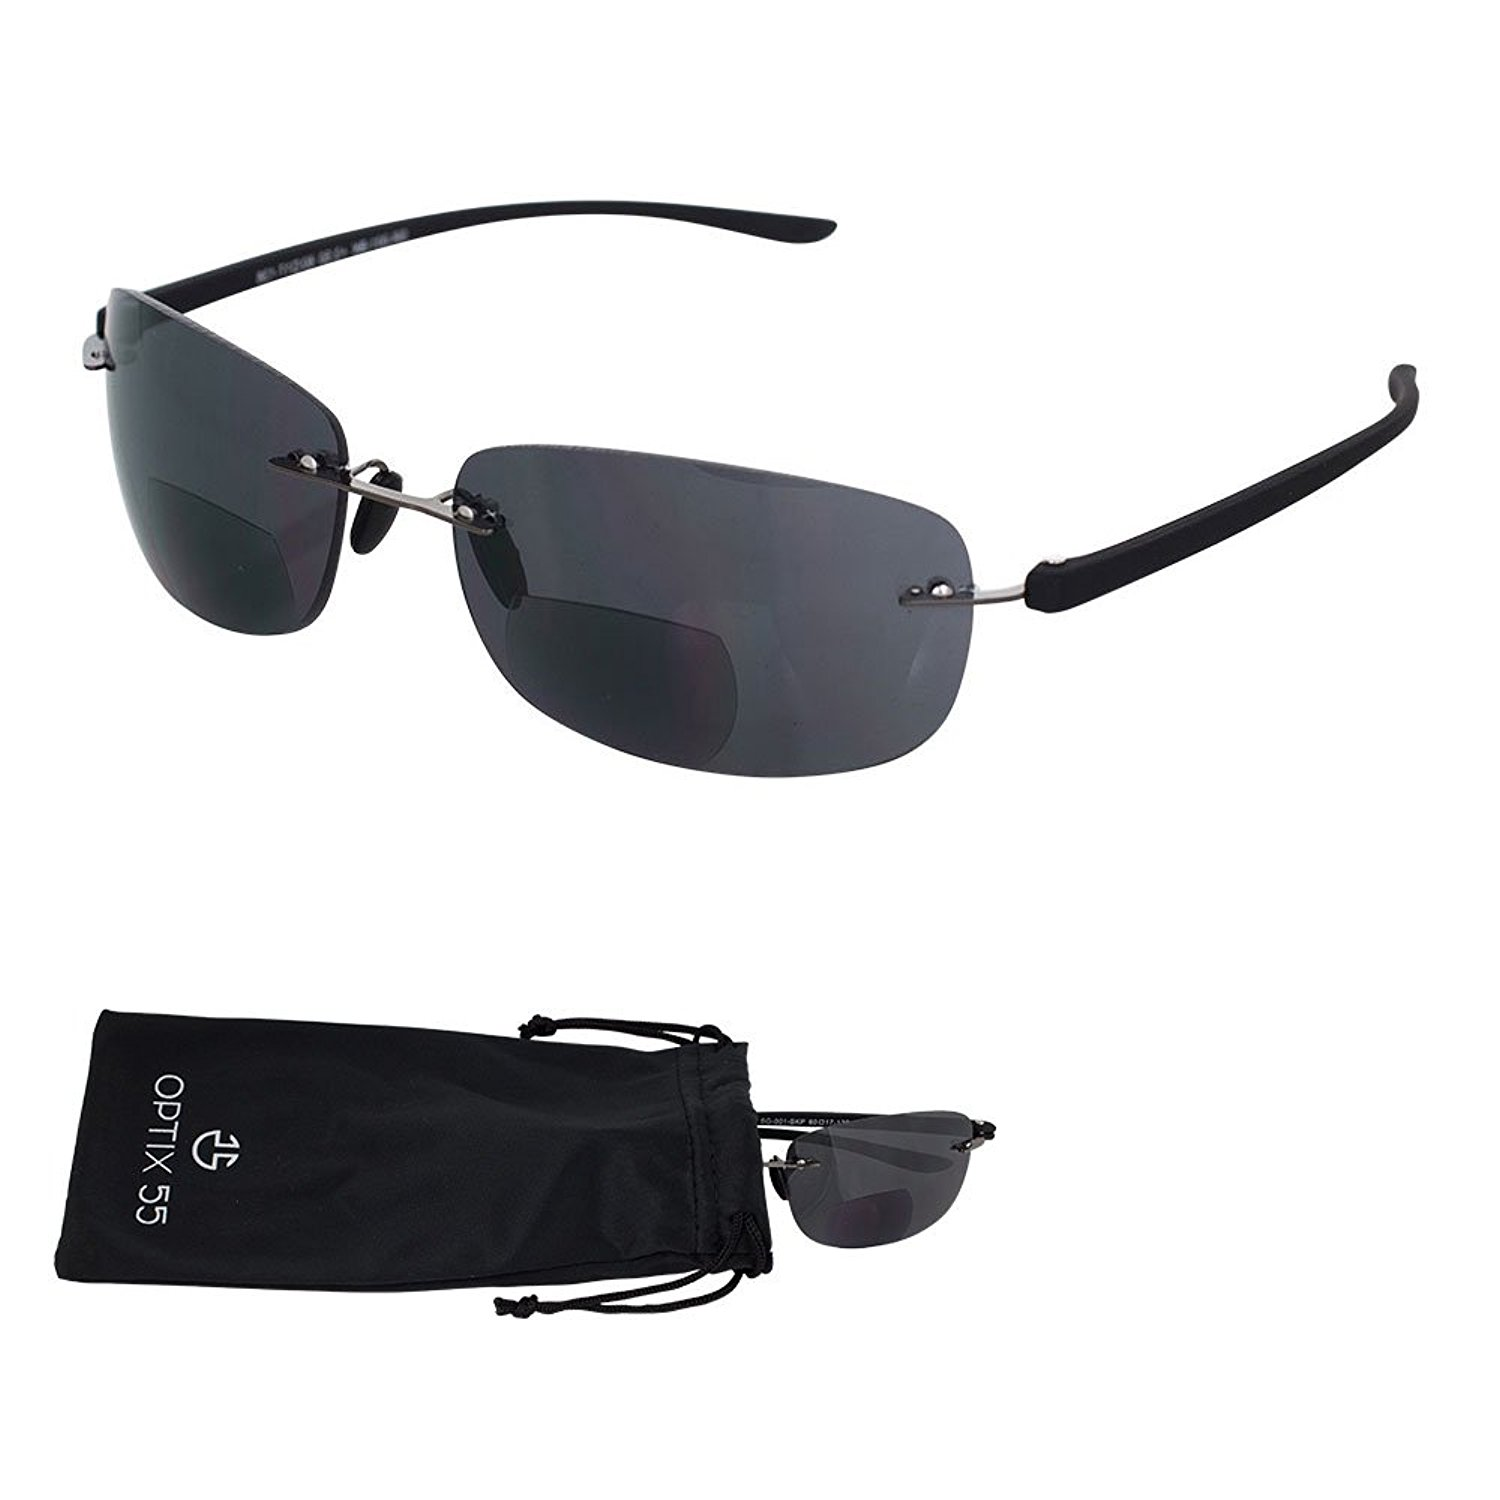 d4d5aa1303 Get Quotations · Rimless Bifocal Reading Sunglasses - Lightweight